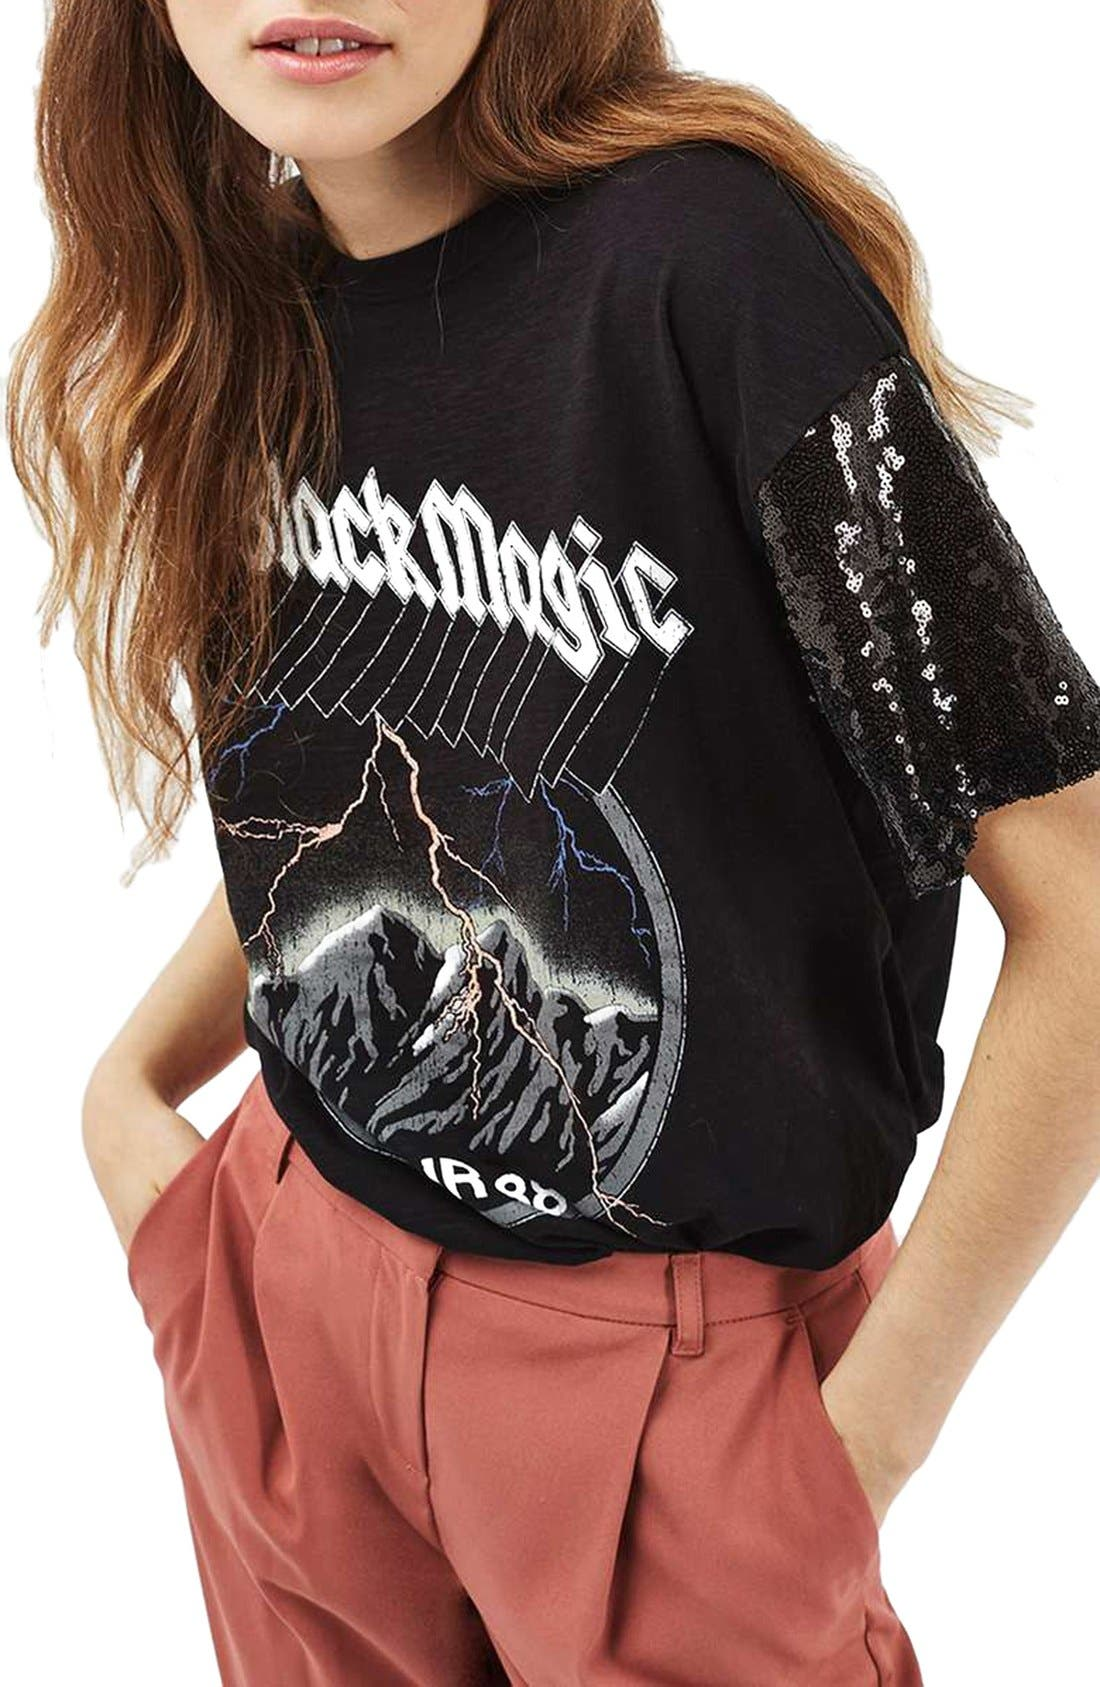 Alternate Image 1 Selected - Topshop Sequin Sleeve Rock Tee